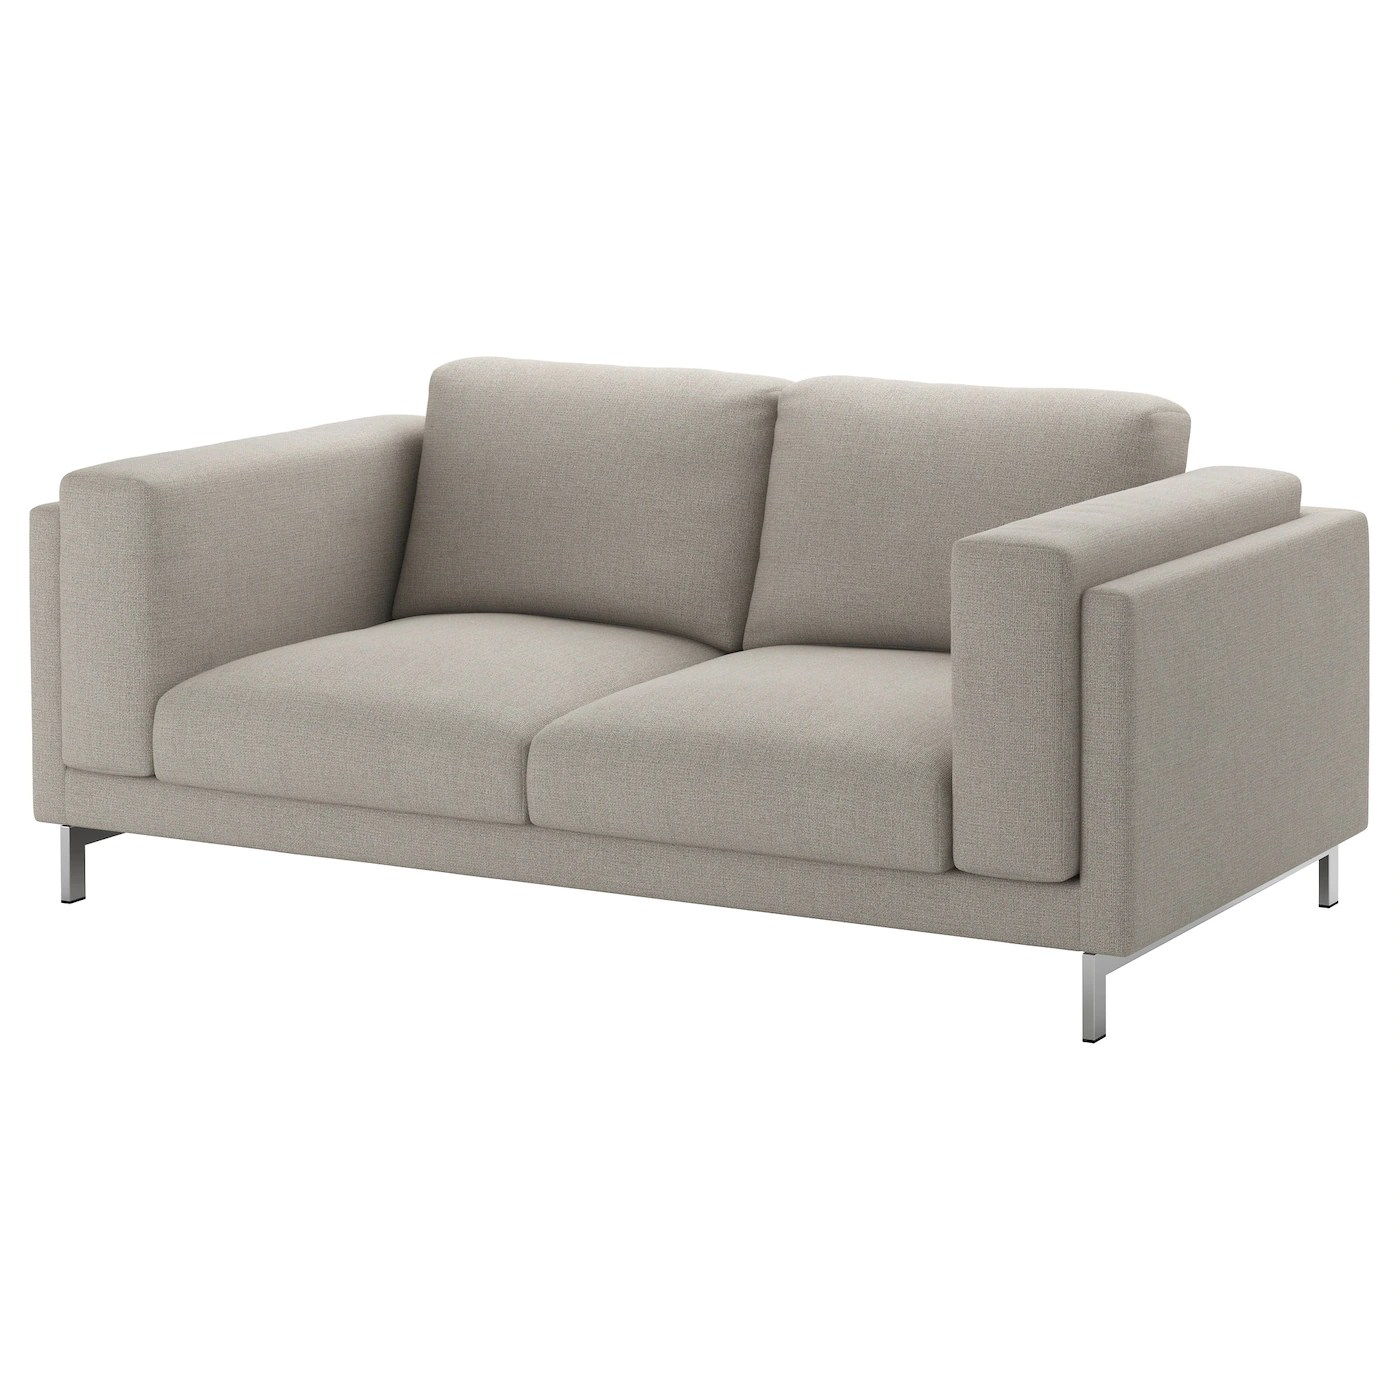 Sofa Füße Chrom Nockeby Legs For 2 Seat Sofa Chrome Plated